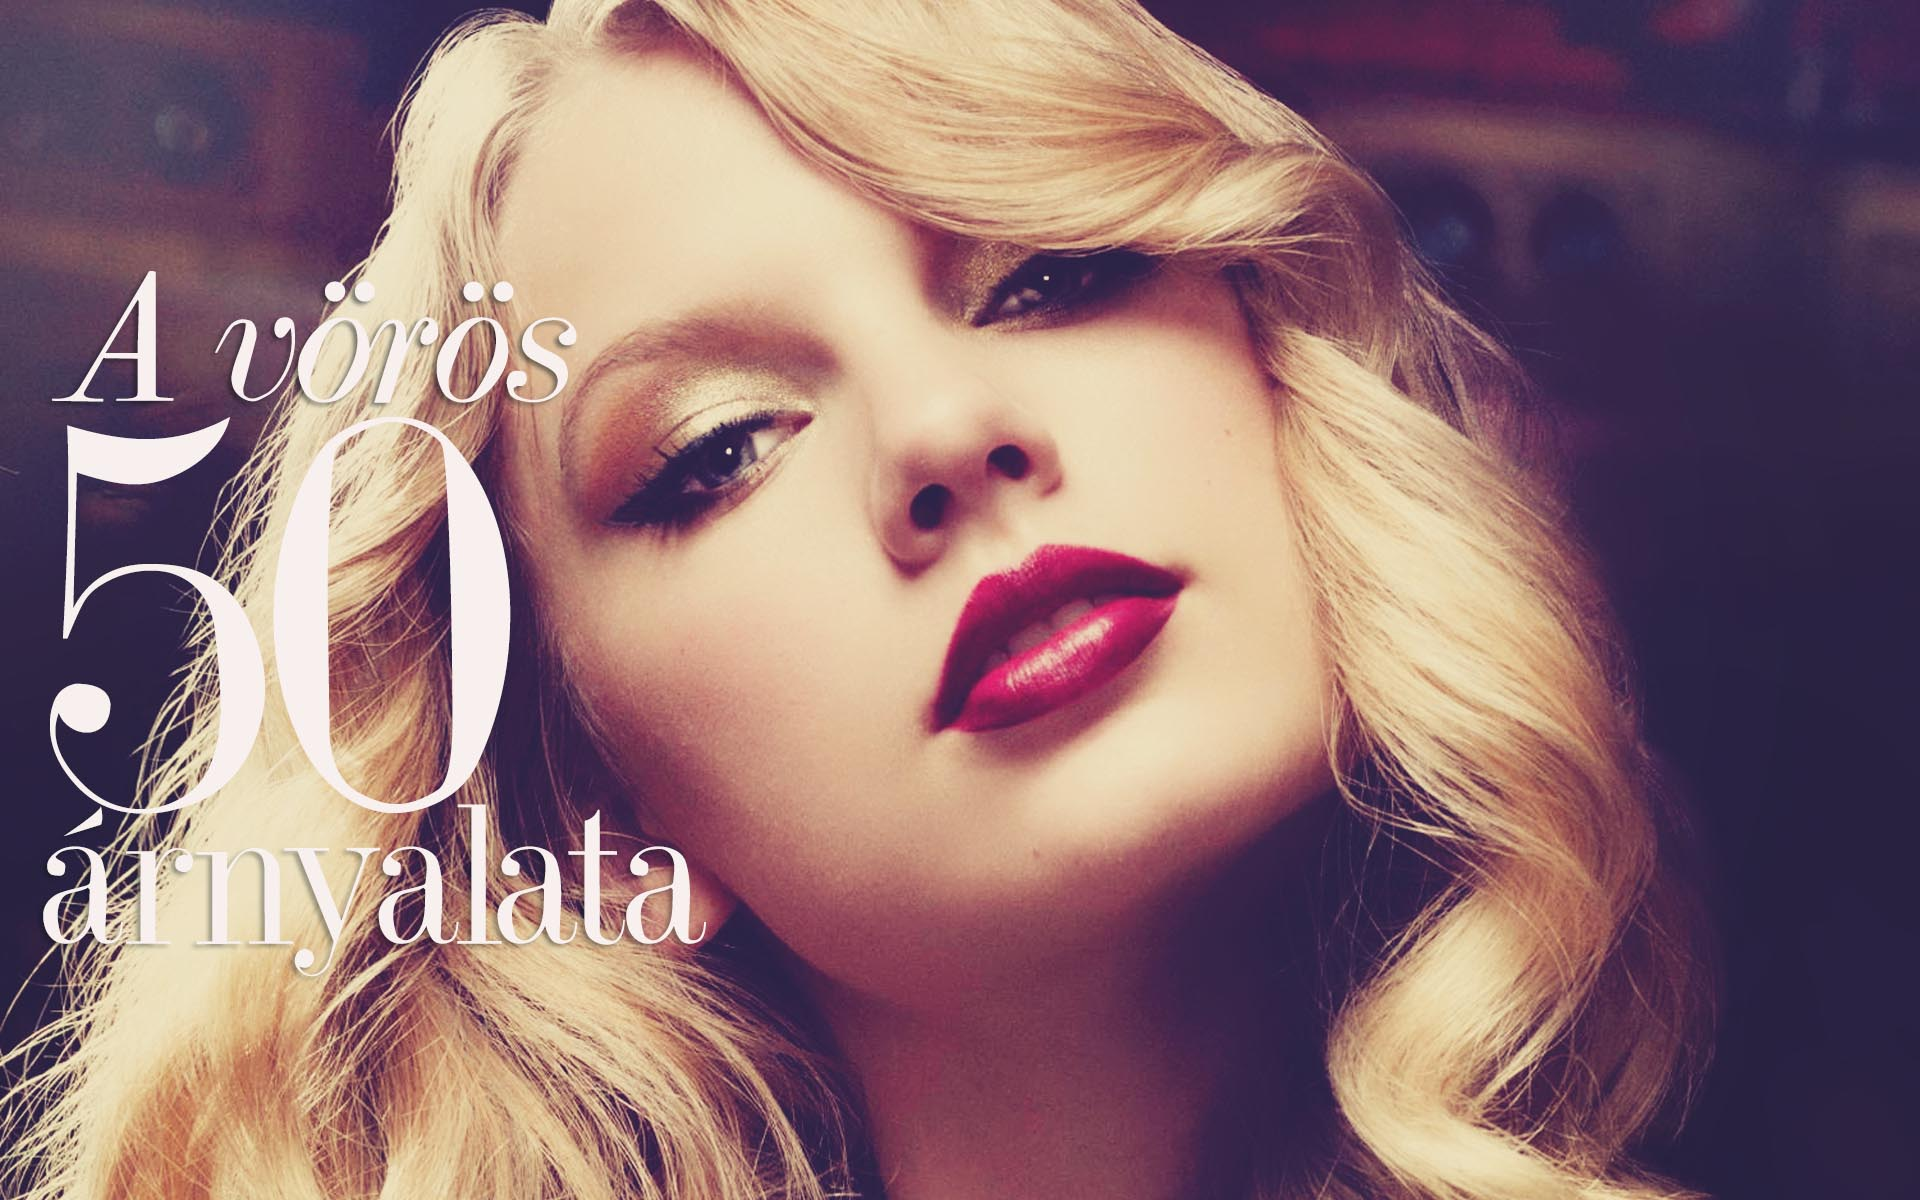 music_taylor_swift_red_lipstick_045774cover.jpg